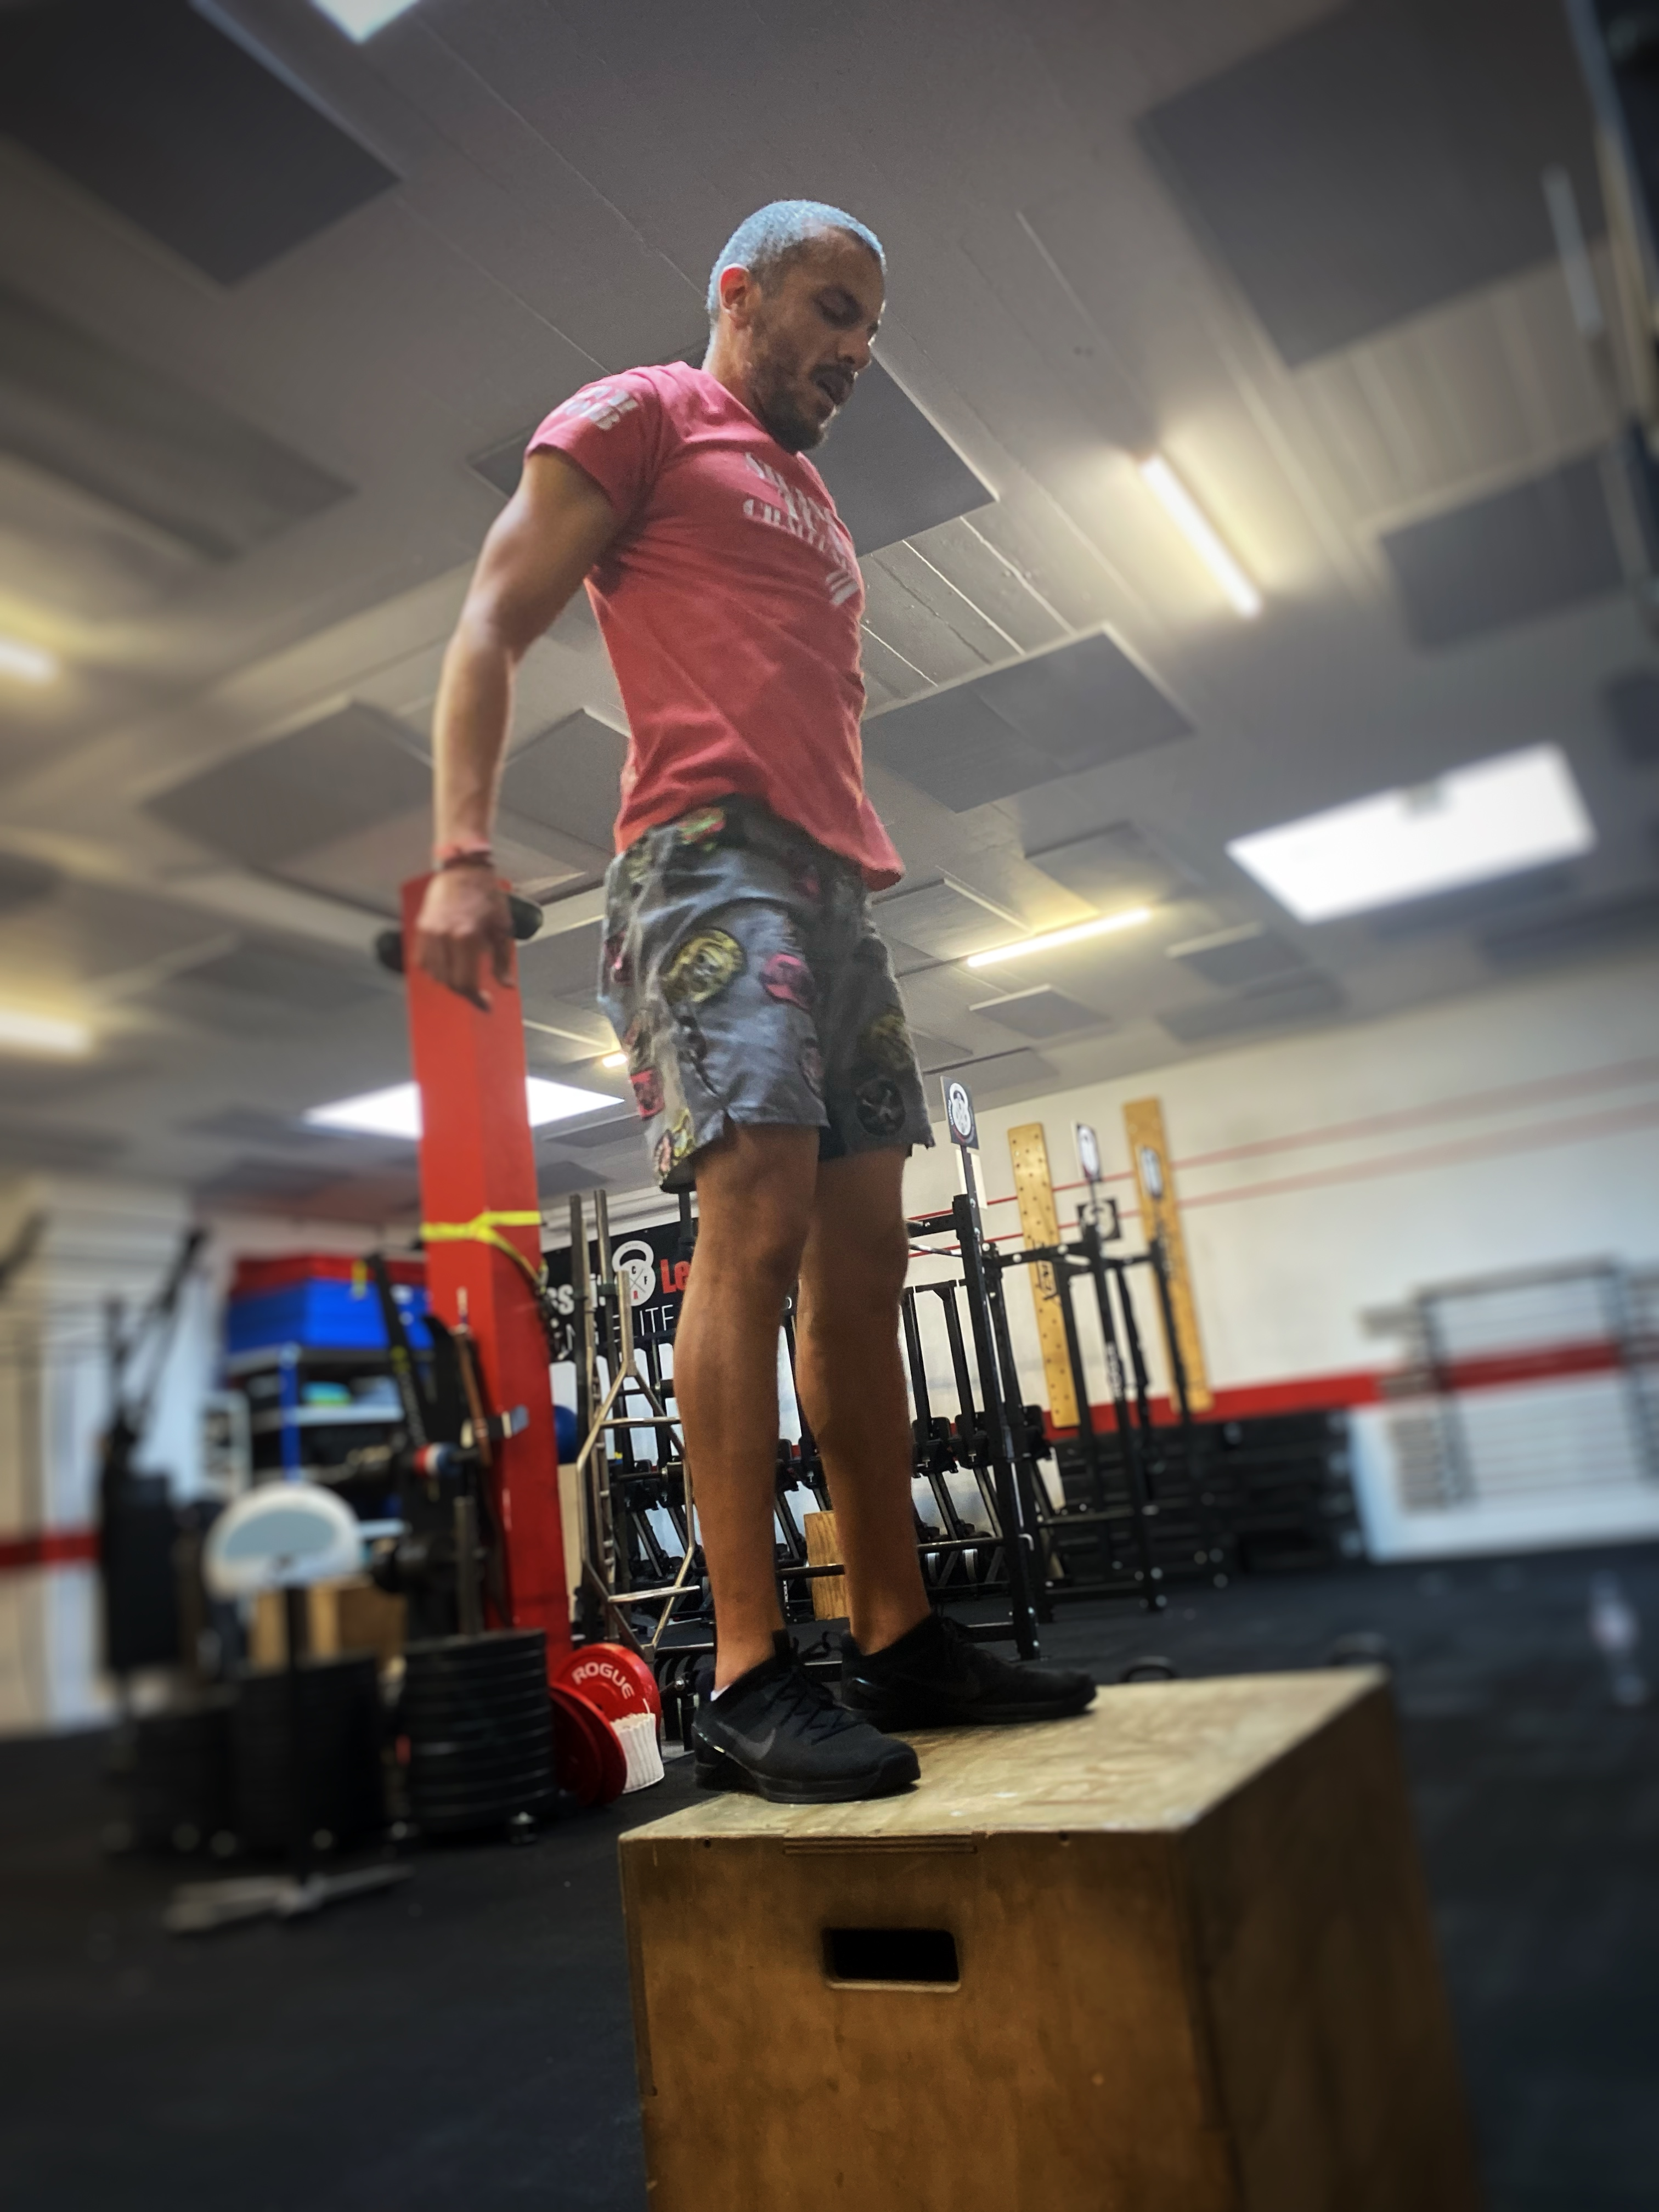 CrossFit team WOD handstand muscle-up weightlifting